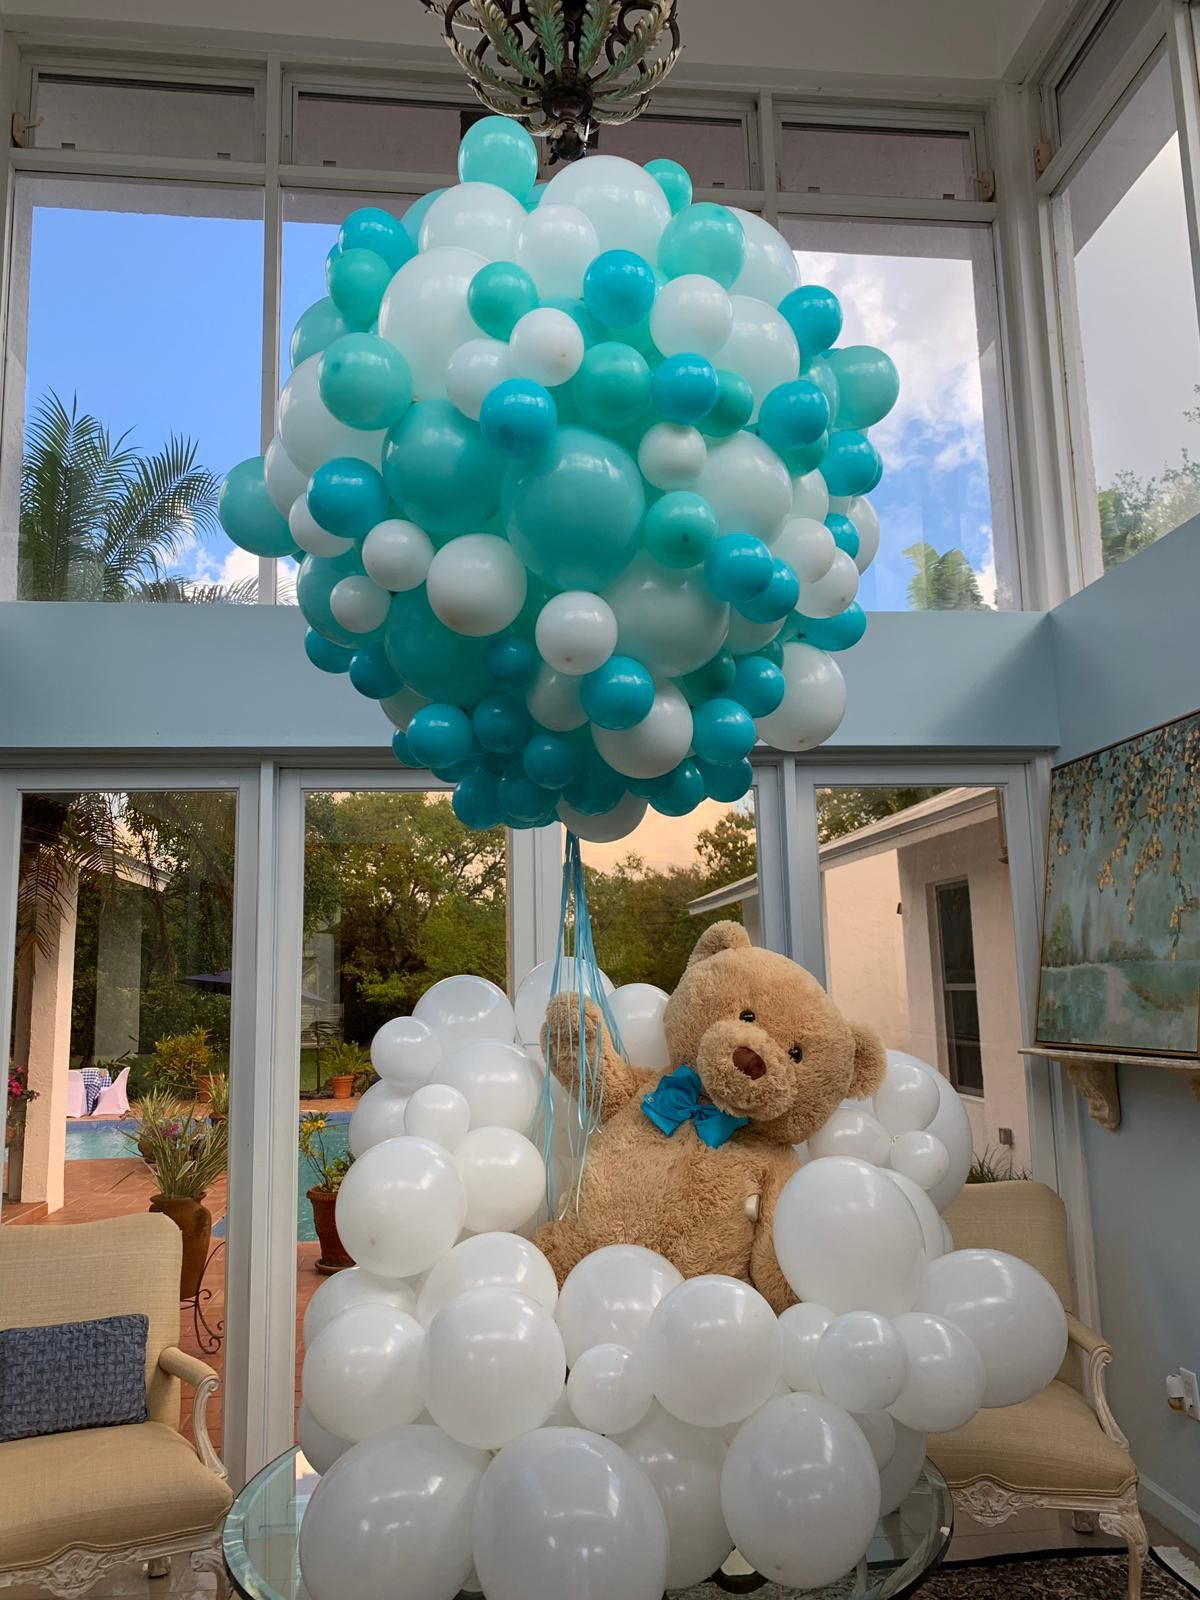 Fliying Teddy Bear Balloons Arrangement For A Baby Shower Welcome